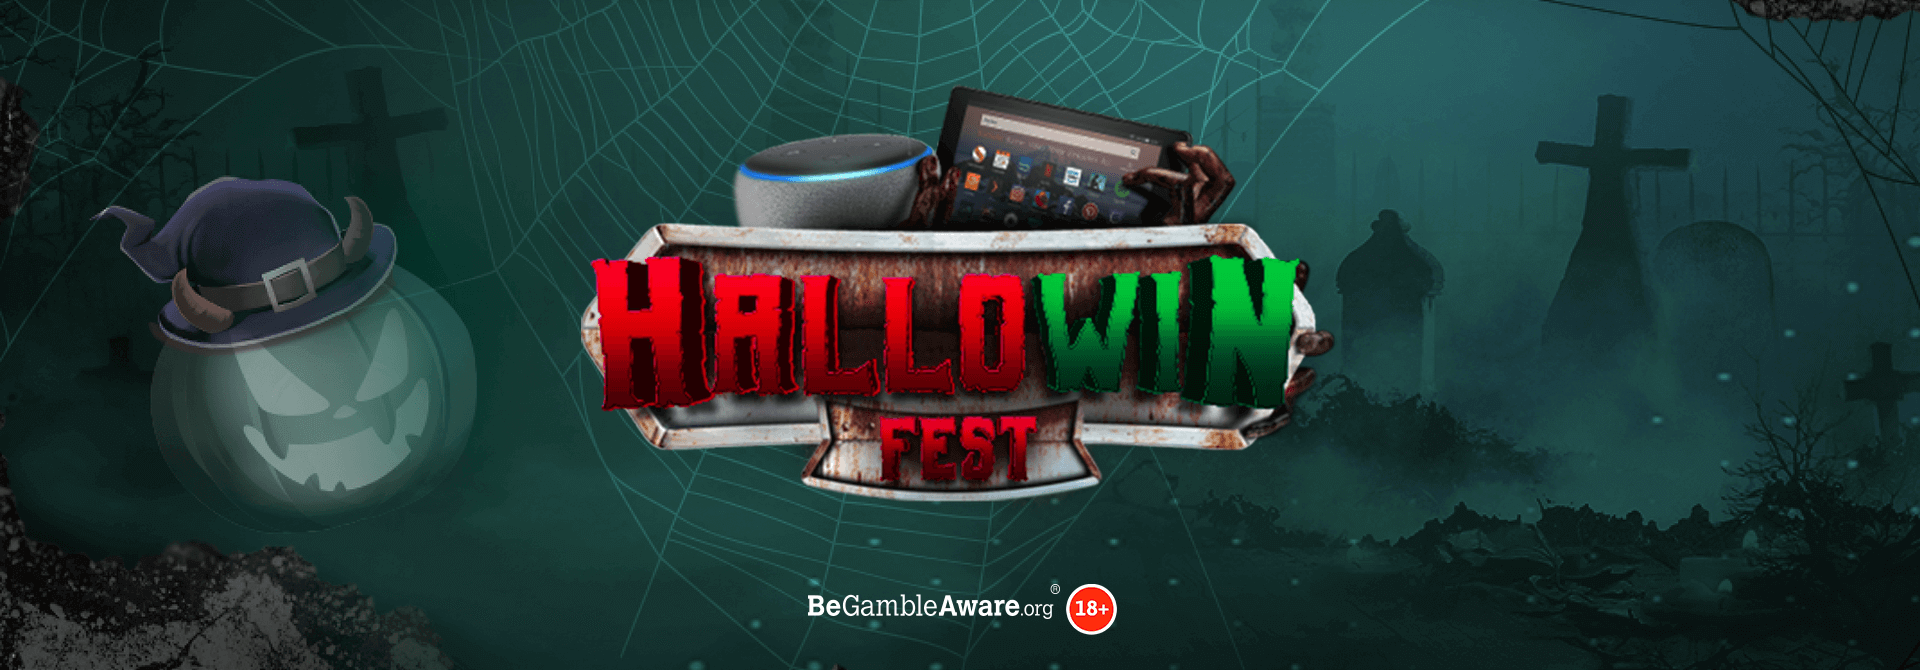 It's time to reveal who is a HalloWINNER this supernatural season on mFortune!